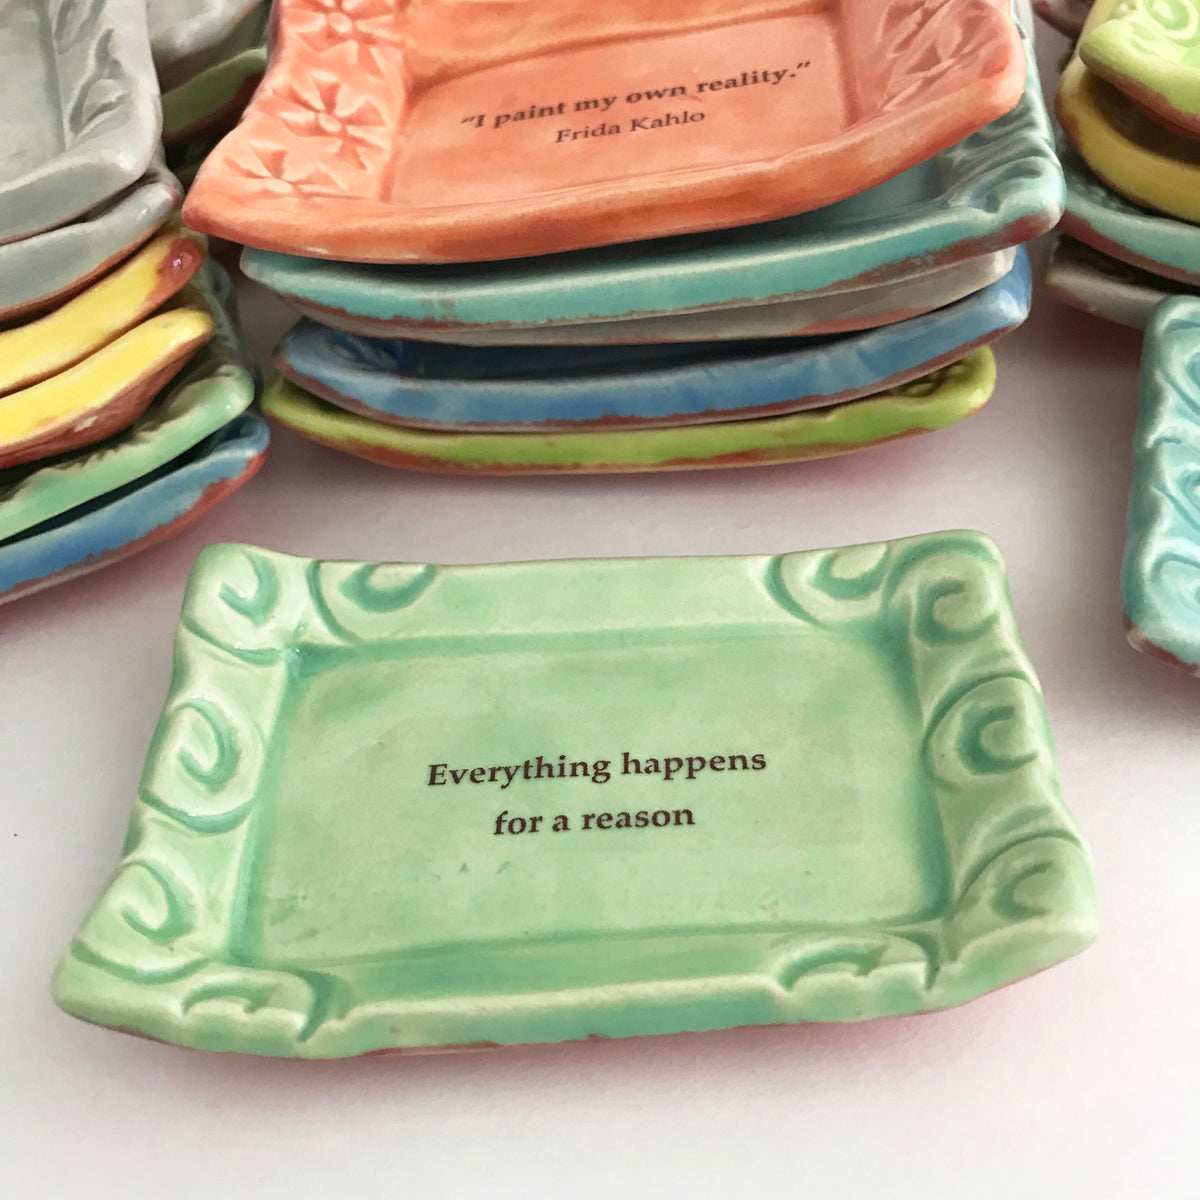 """Everything happens for a reason"" quote on handmade ceramic dish."